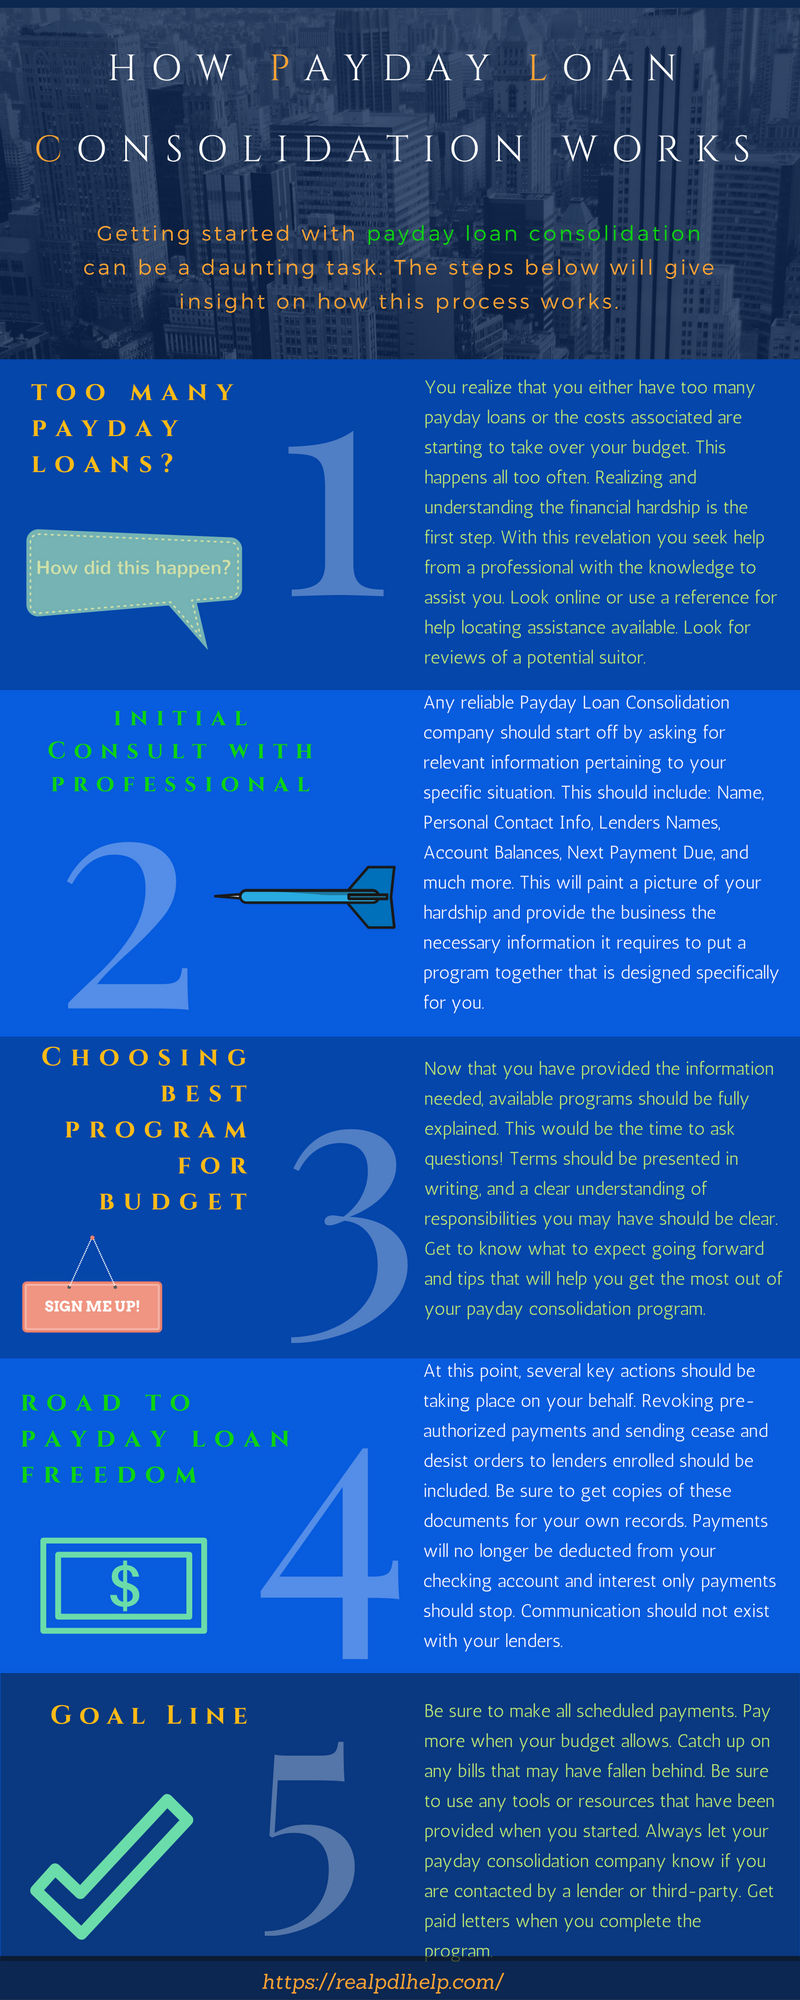 An infographic about how payday loan consolidation works in 5 steps